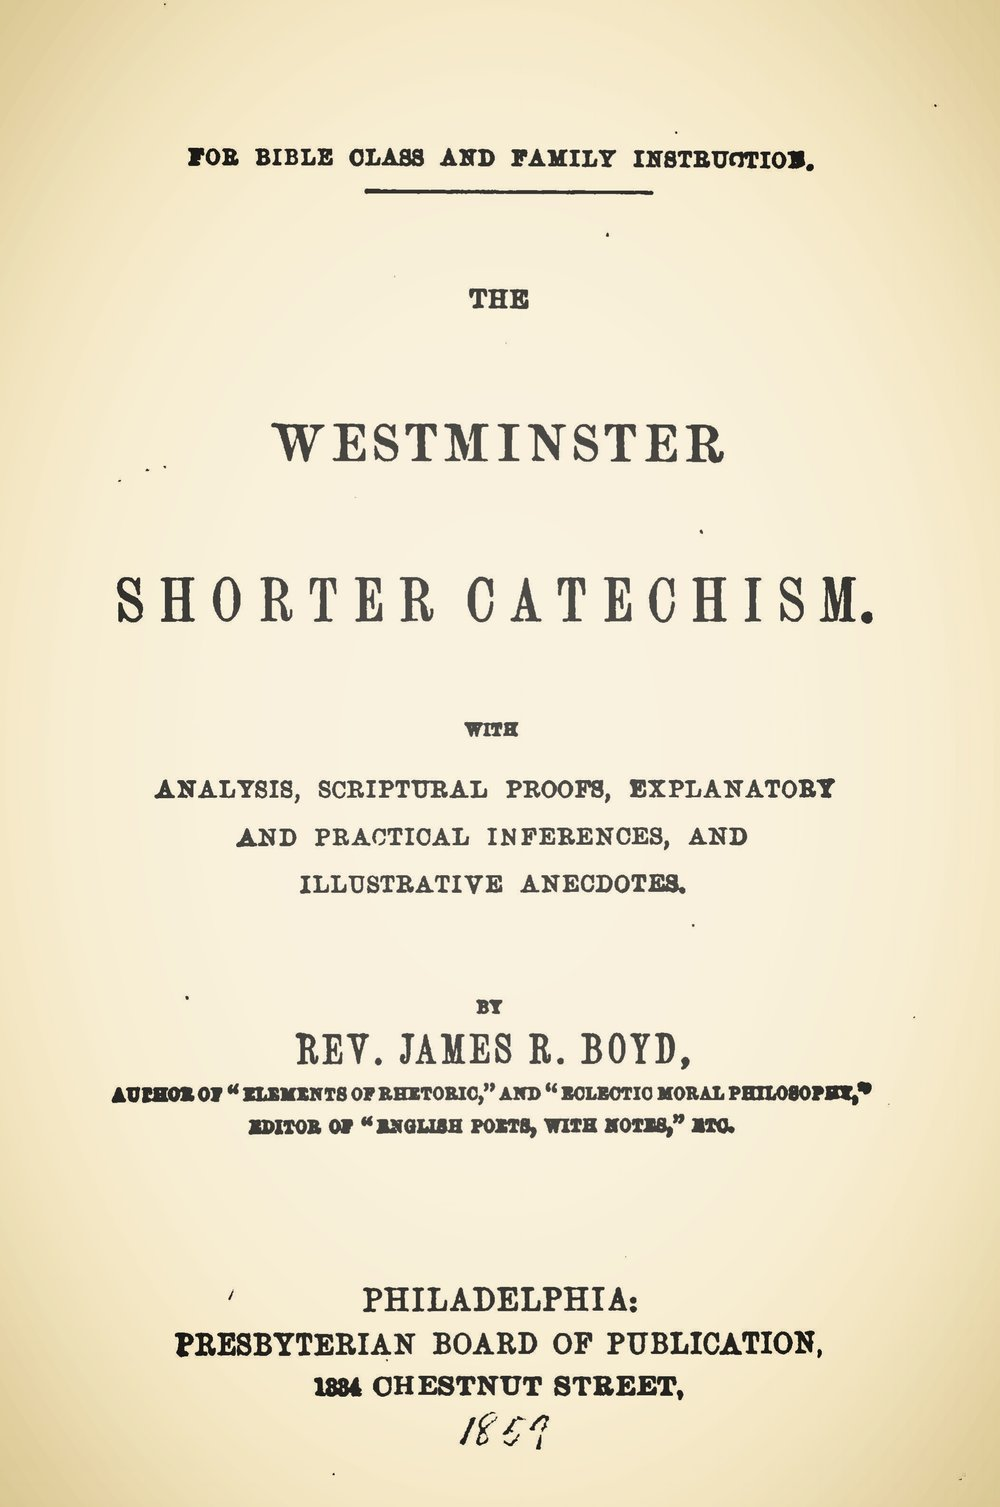 Boyd, James Robert, The Westminster Shorter Catechism Title Page.jpg